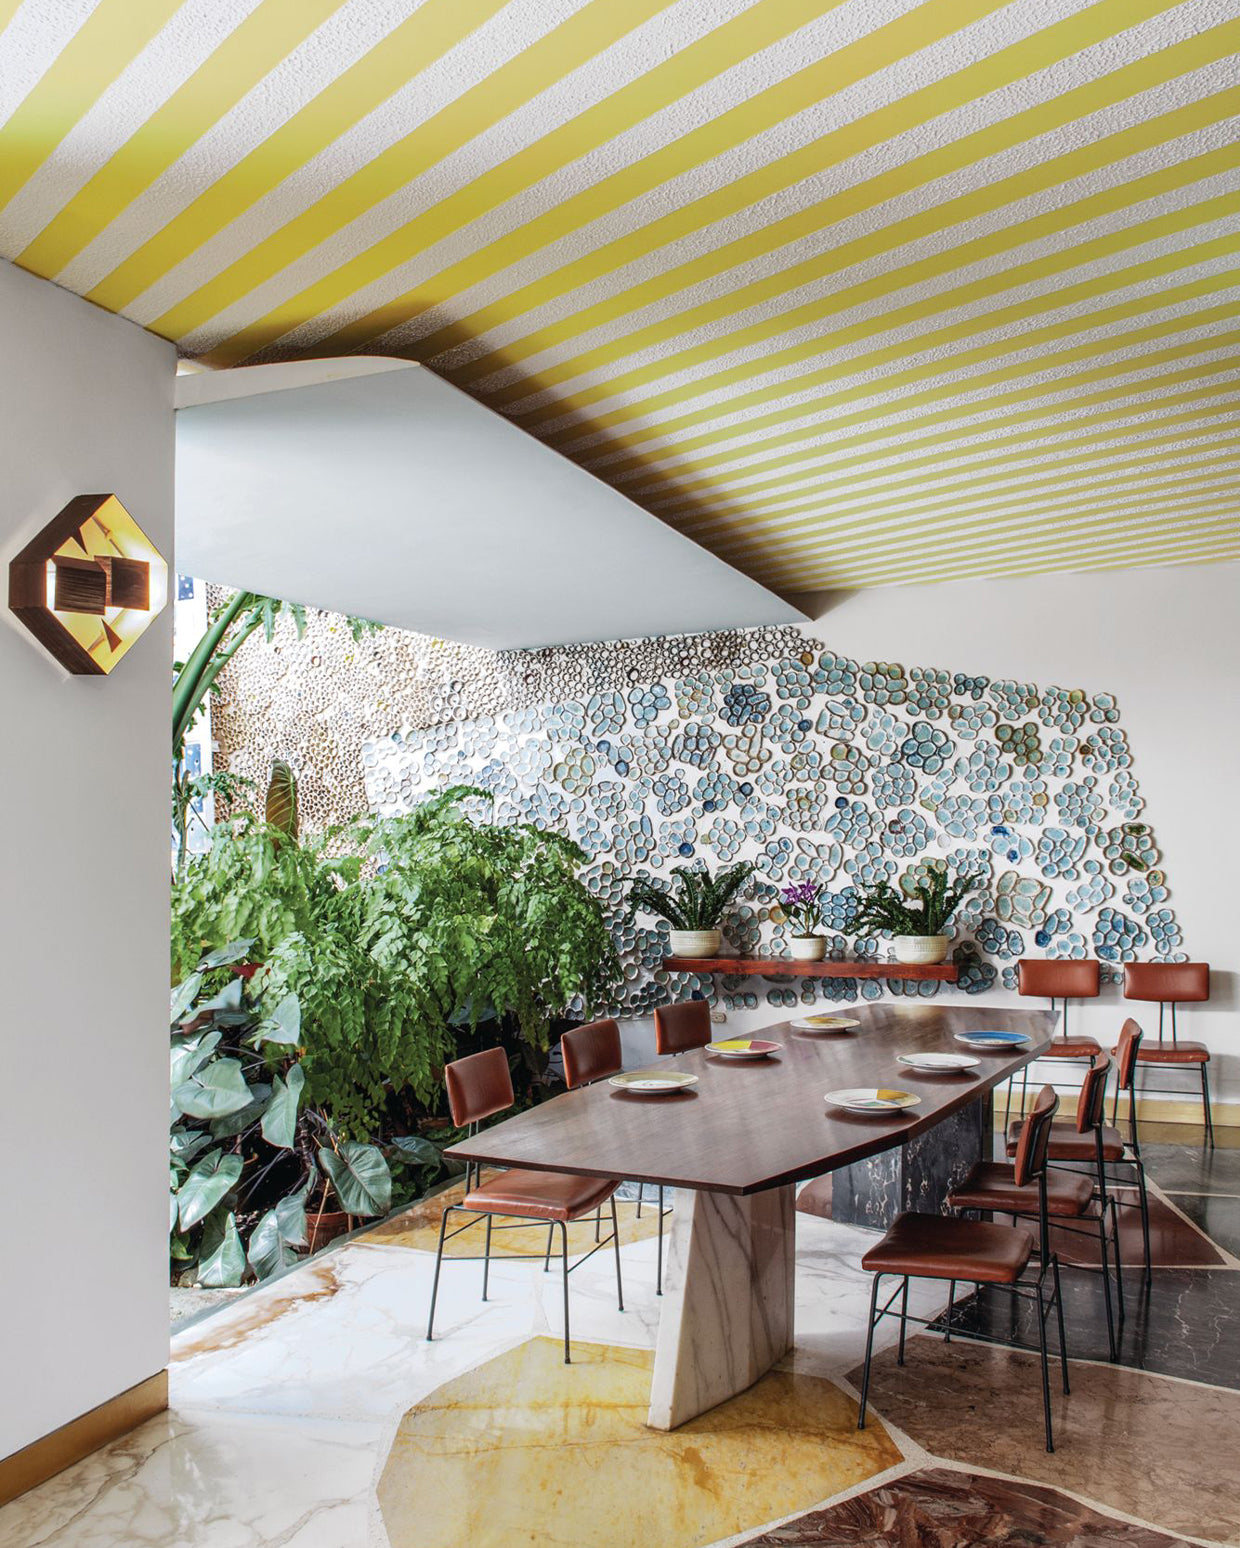 Gio Ponti Interior images of Villa Planchart in The Eclectic Life and Work of Gio Ponti for A Collected Man London